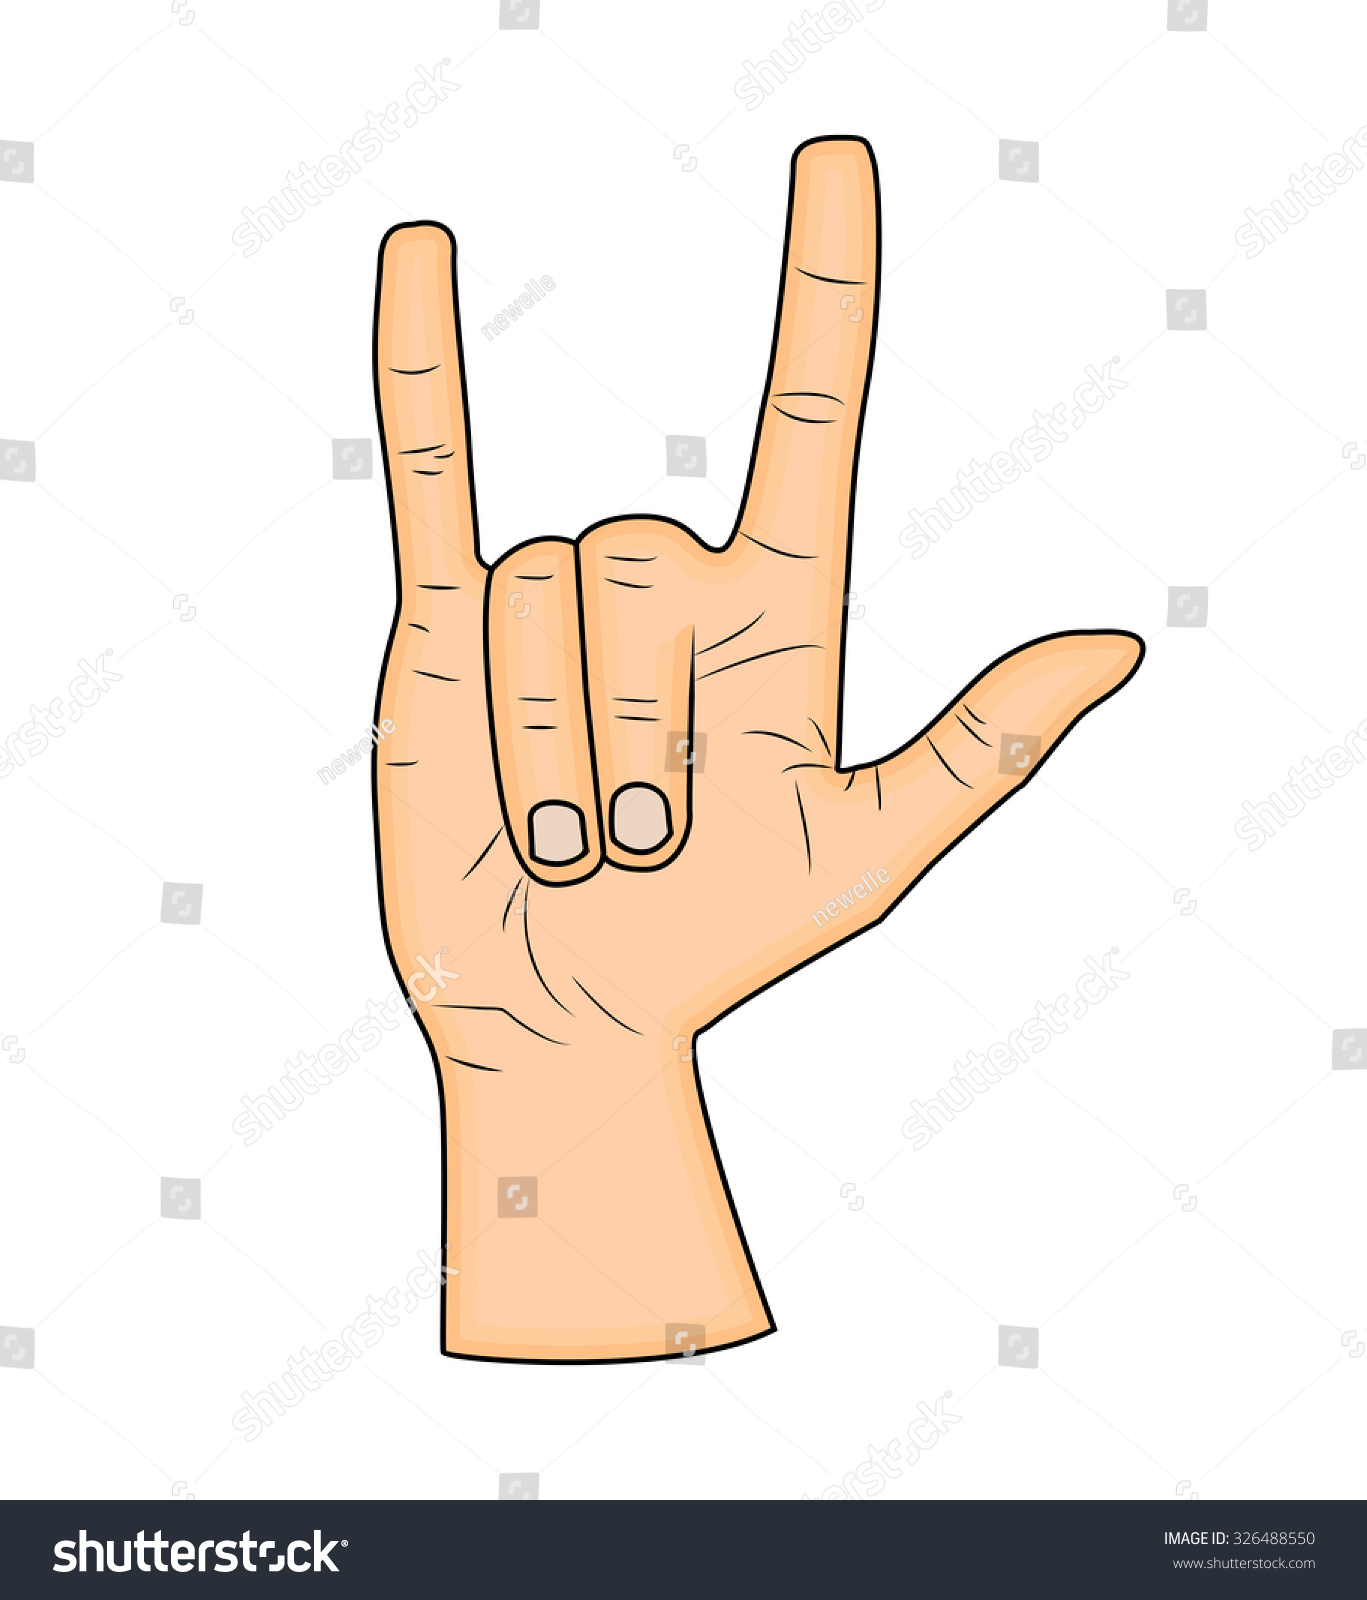 Royalty Free Horns Hand Satan Sign Finger Up 326488550 Stock